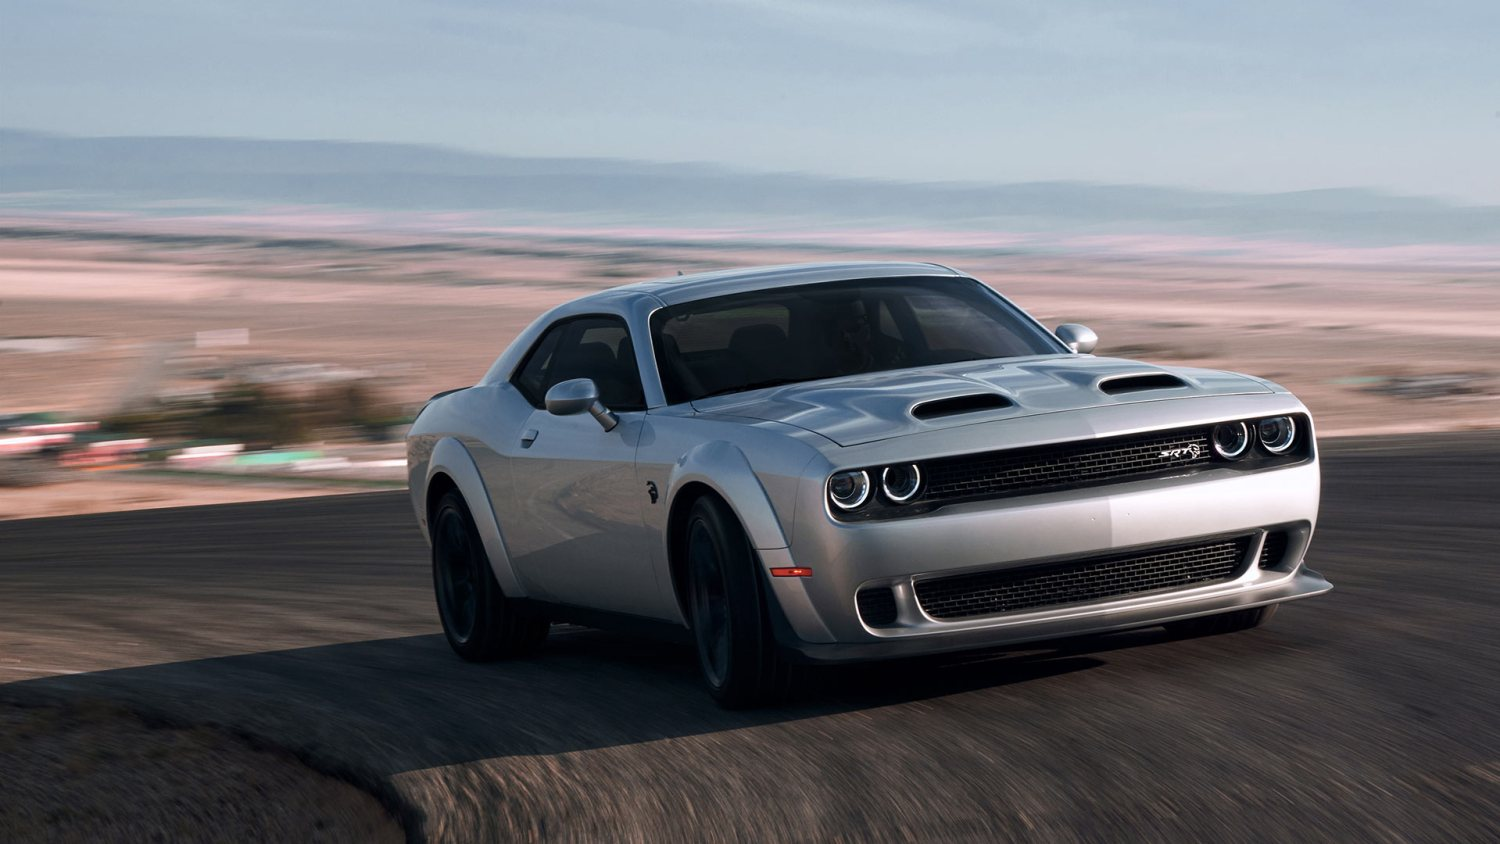 Dodge Challenger is the 2019 Car of Texas